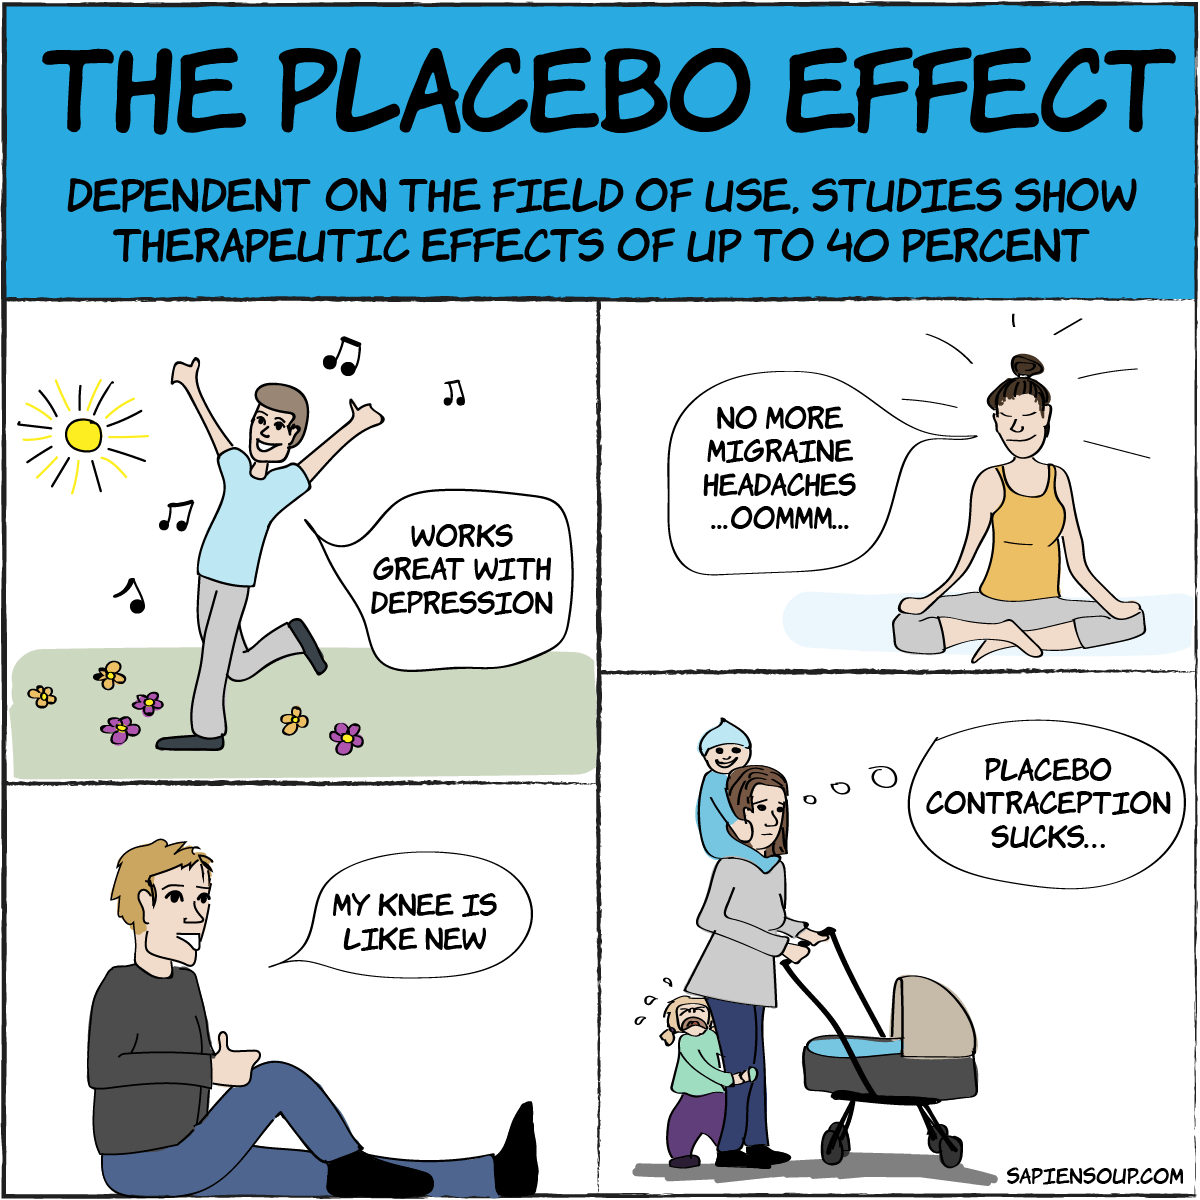 efficacy of placebo effect in depression, migraine, pain